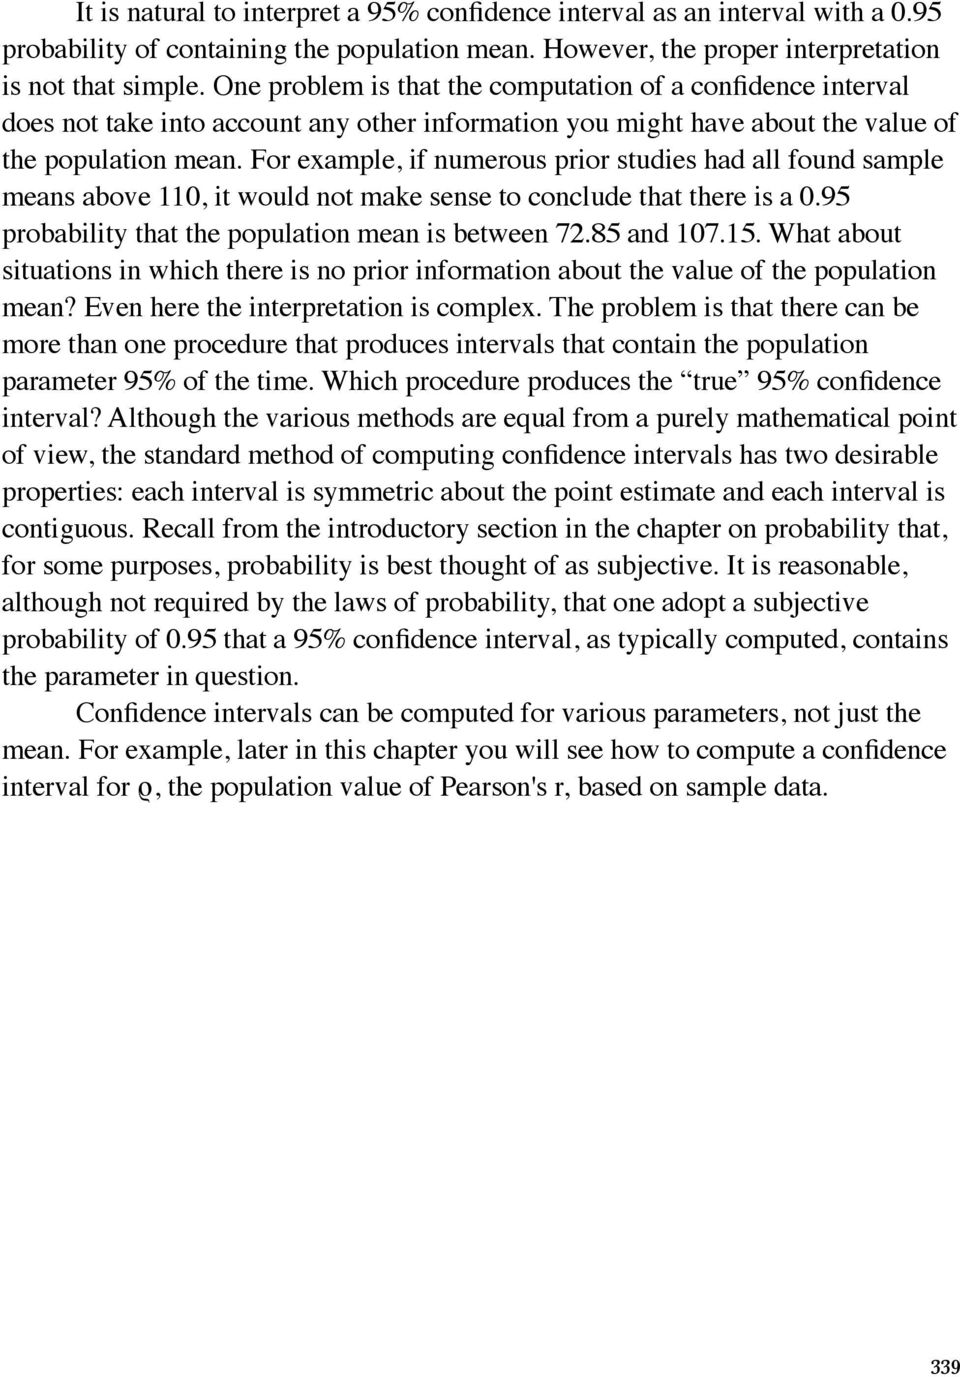 For example, if numerous prior studies had all found sample means above 110, it would not make sense to conclude that there is a 0.95 probability that the population mean is between 72.85 and 107.15.